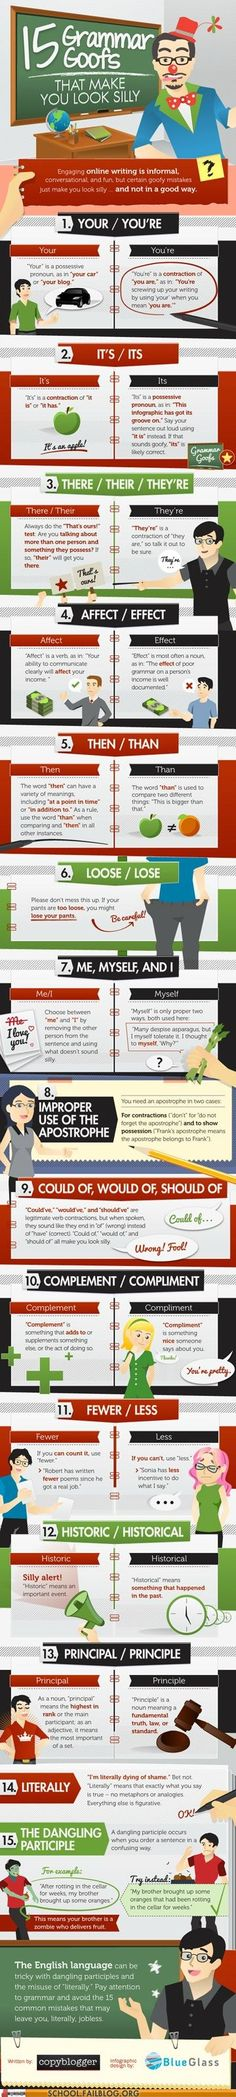 #English #Language: 15 errori comuni | #infographic